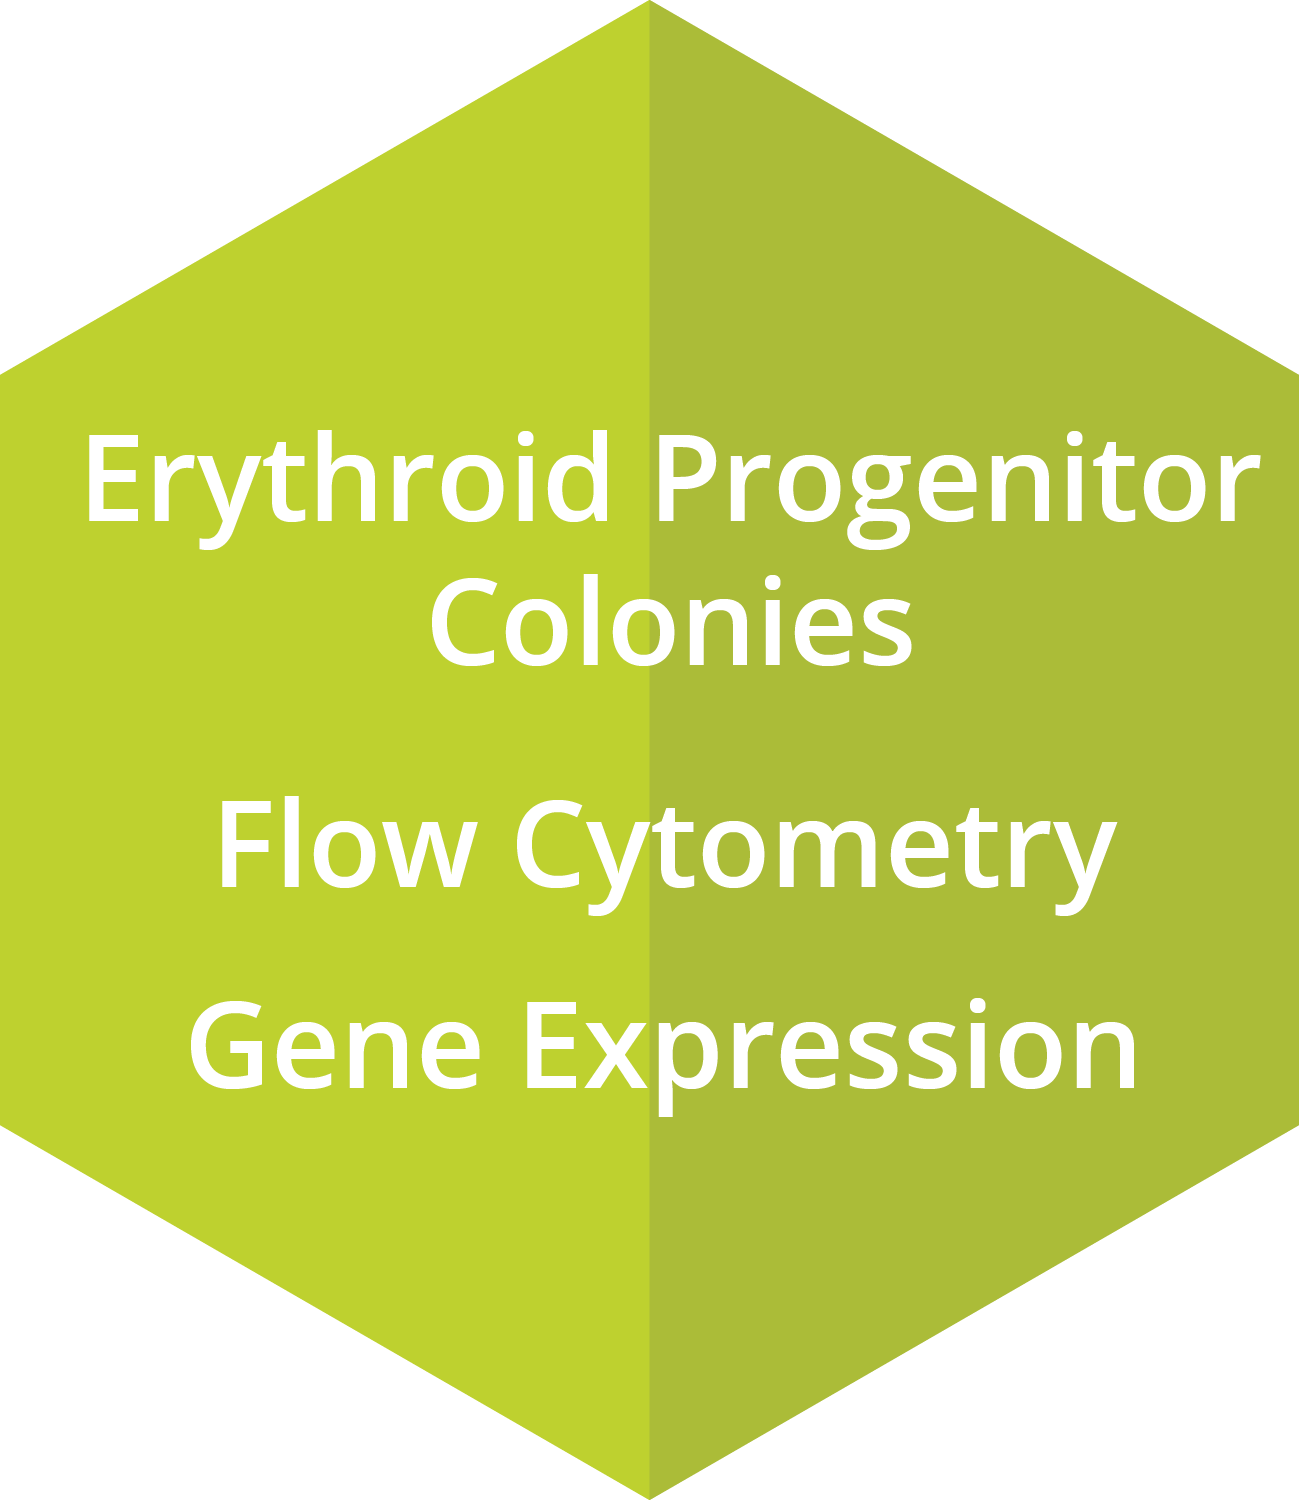 Erythroid Progenitor Colonies, Flow Cytometry, Gene Expression